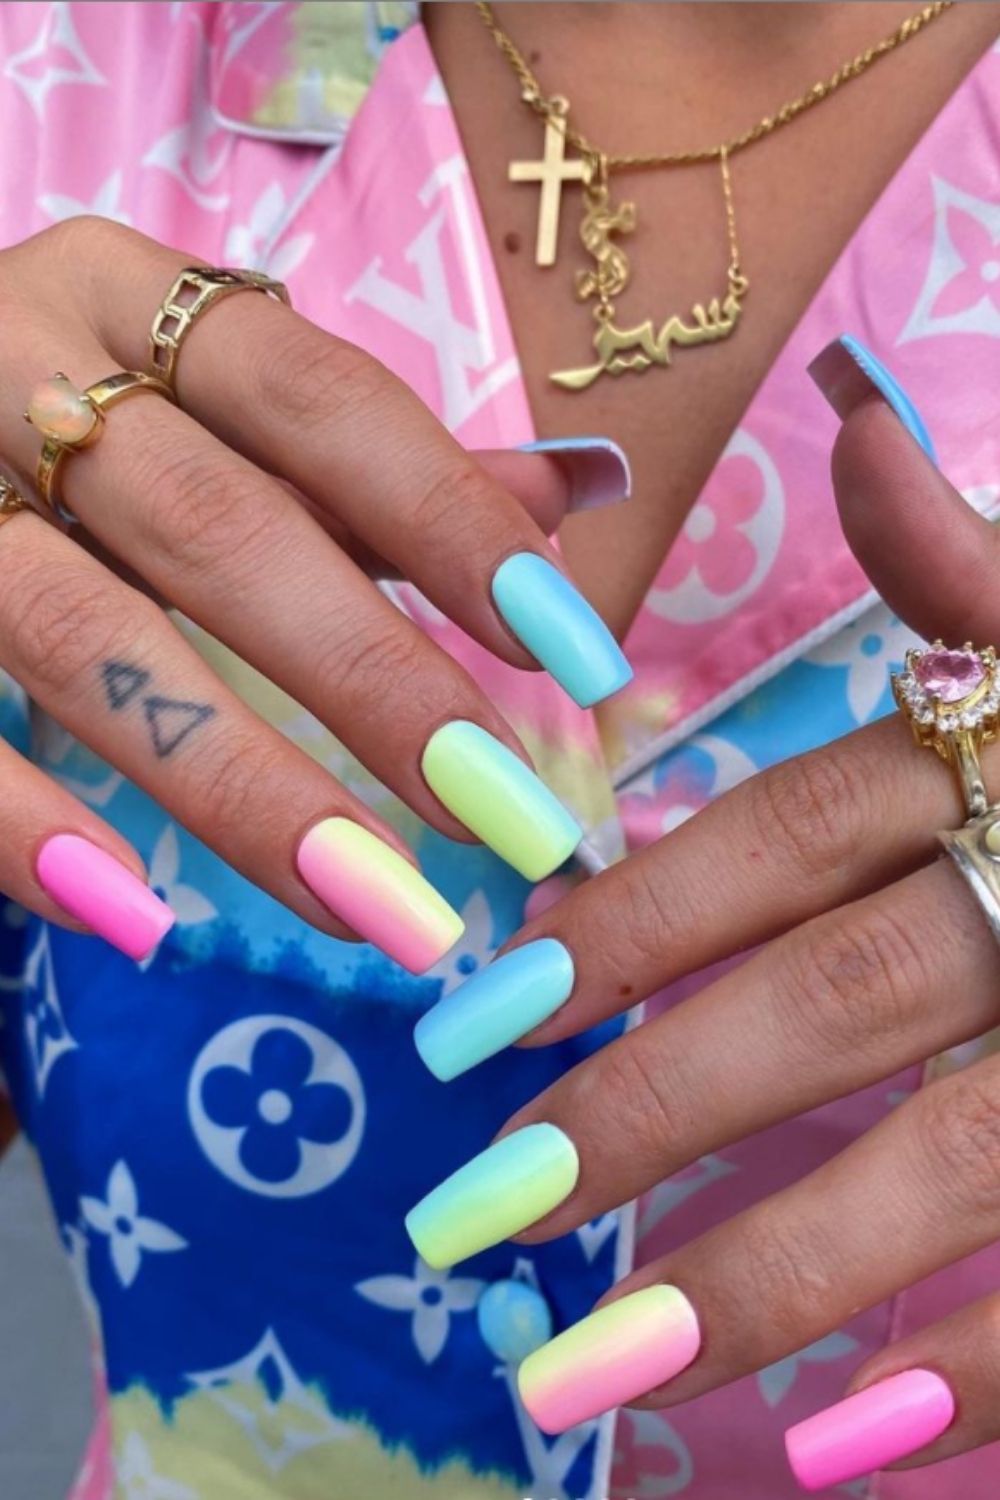 Awesome Nail Ideas For Summer Nail Colors In 2021!